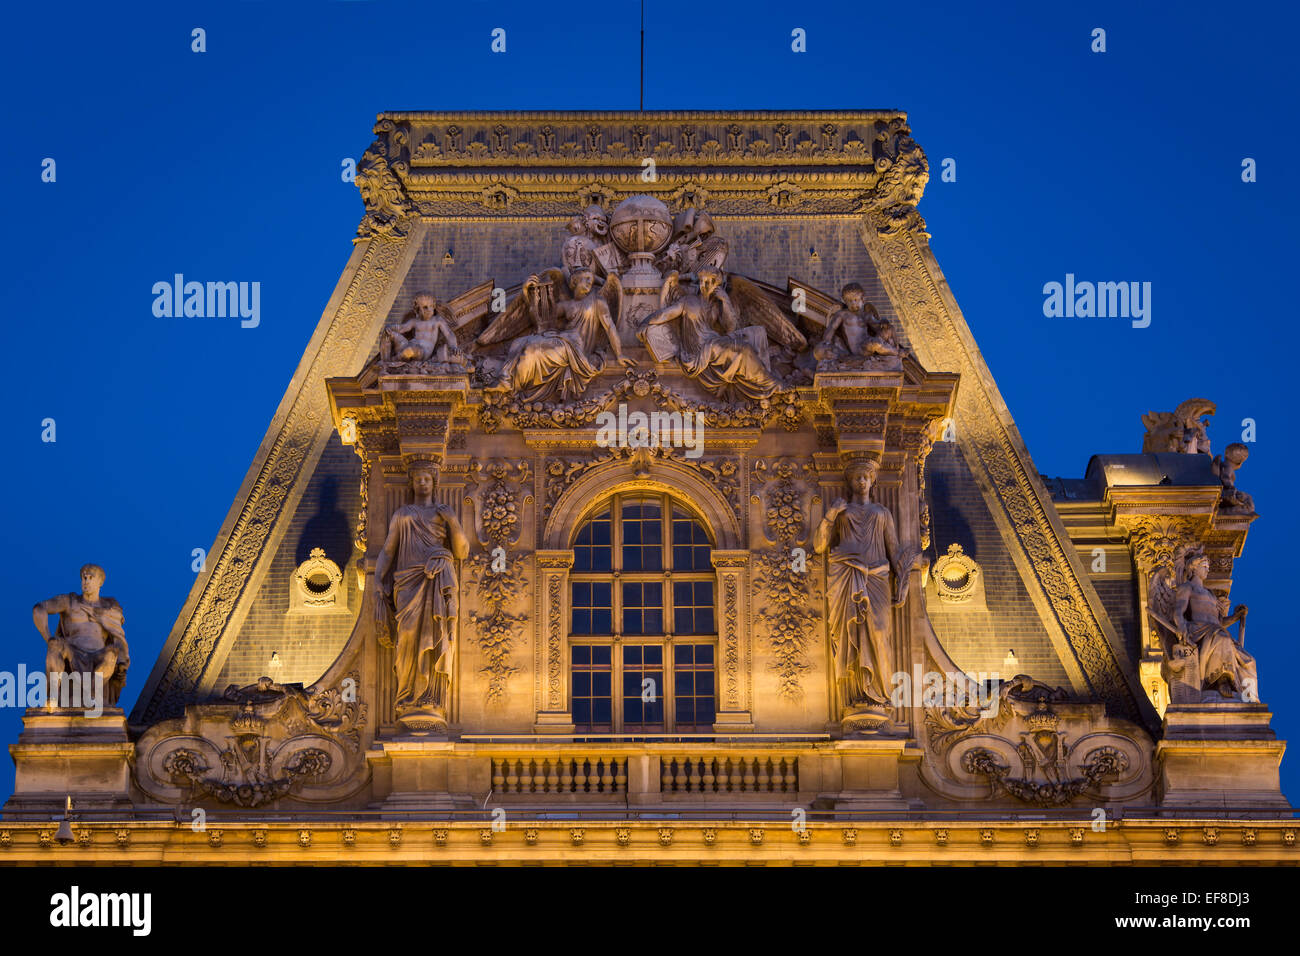 Ornate roof of Musee du Louvre, Paris, France - Stock Image